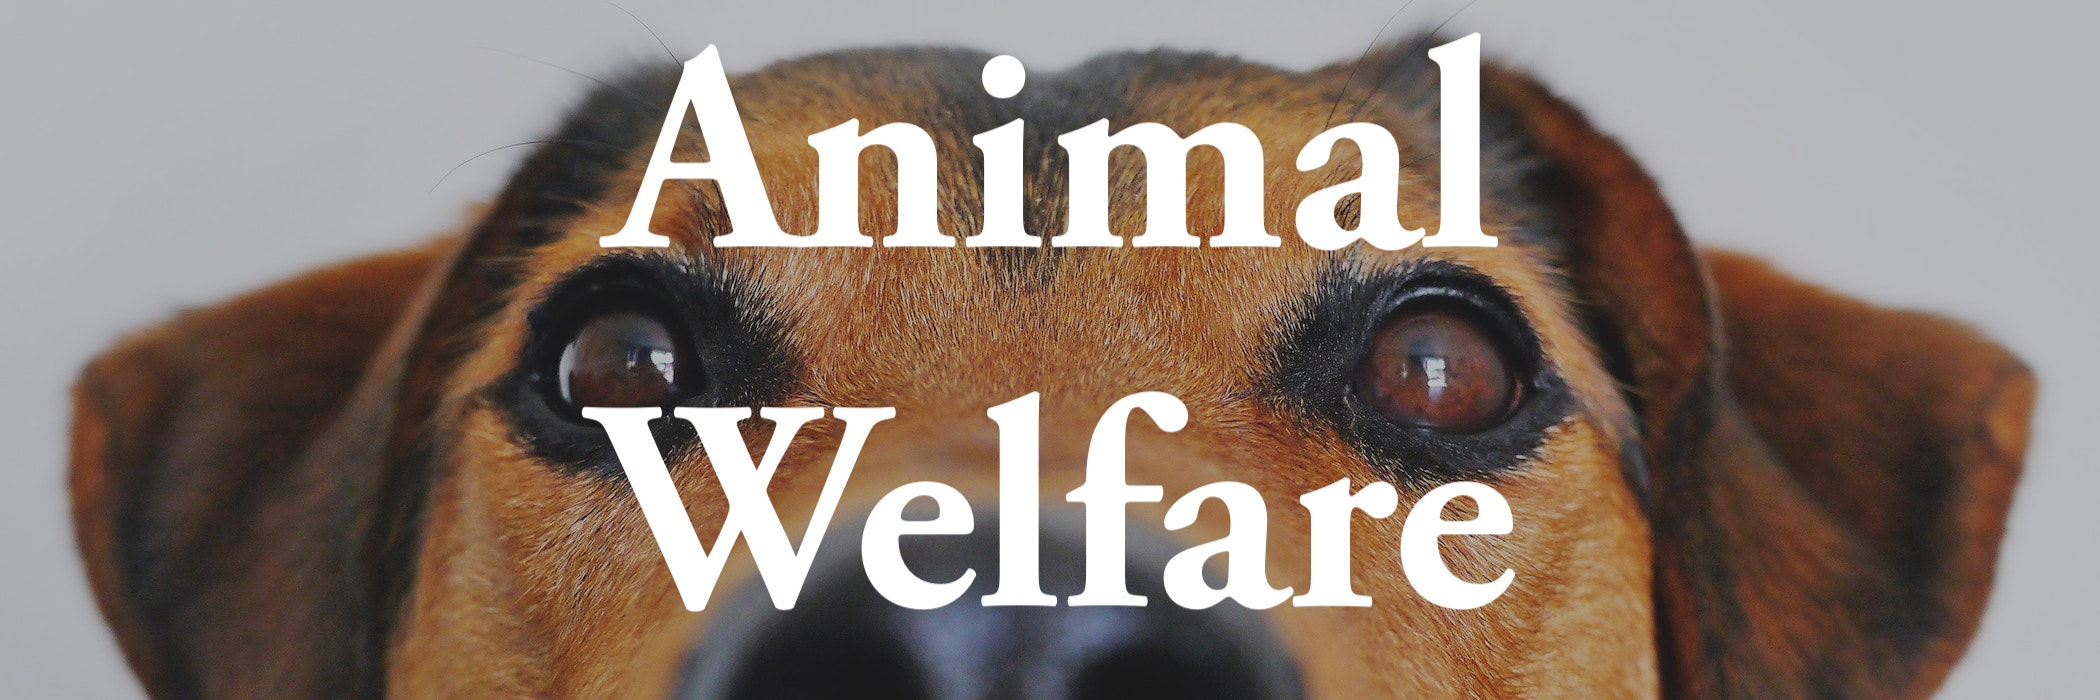 Animal welfare picture of a dog